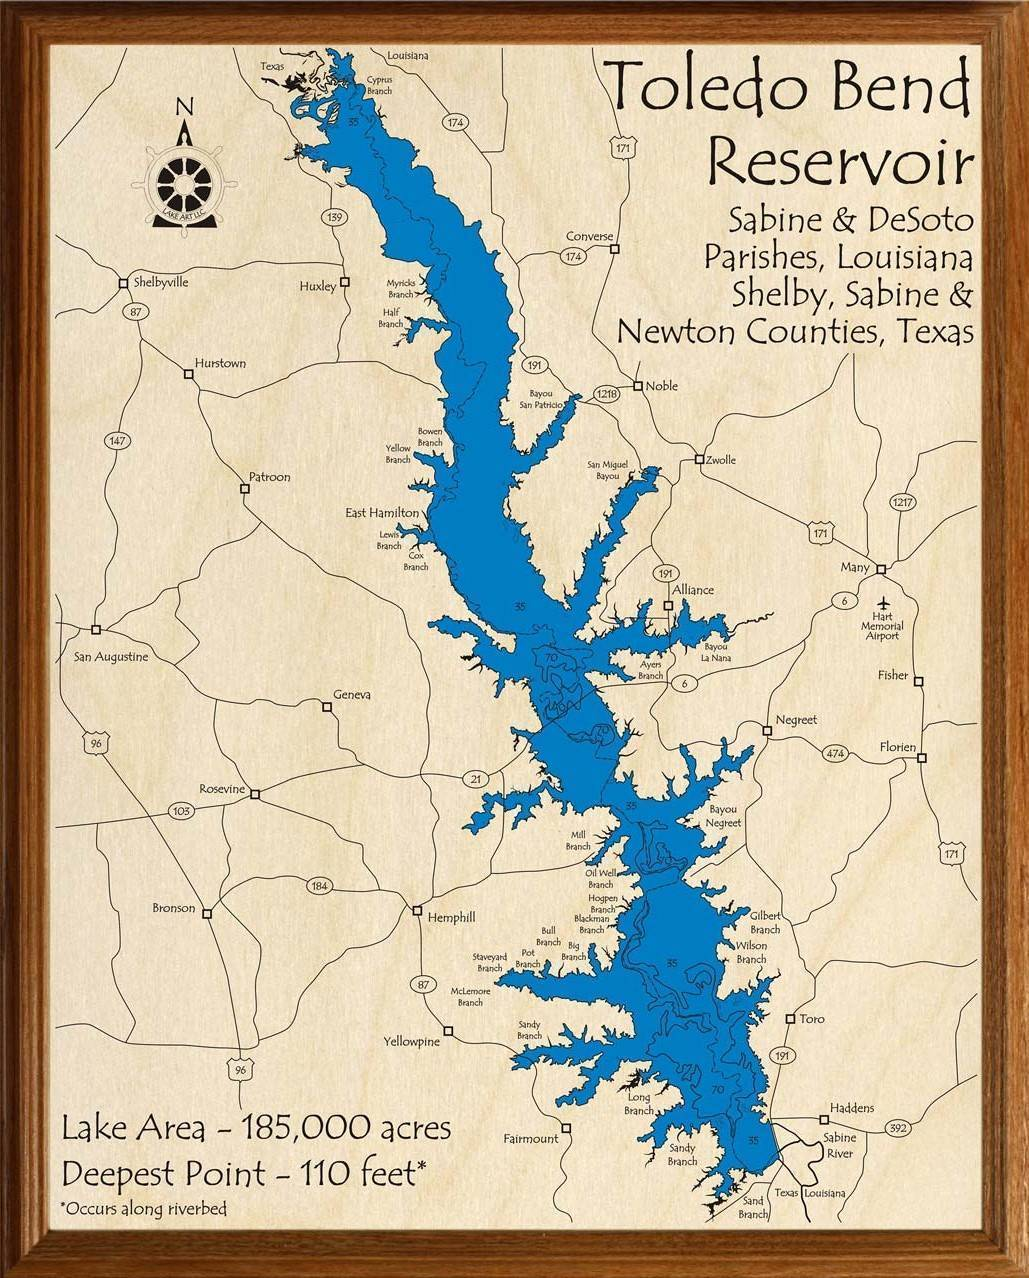 map of toledo bend lake Toledo Bend Reservoir Lakehouse Lifestyle map of toledo bend lake